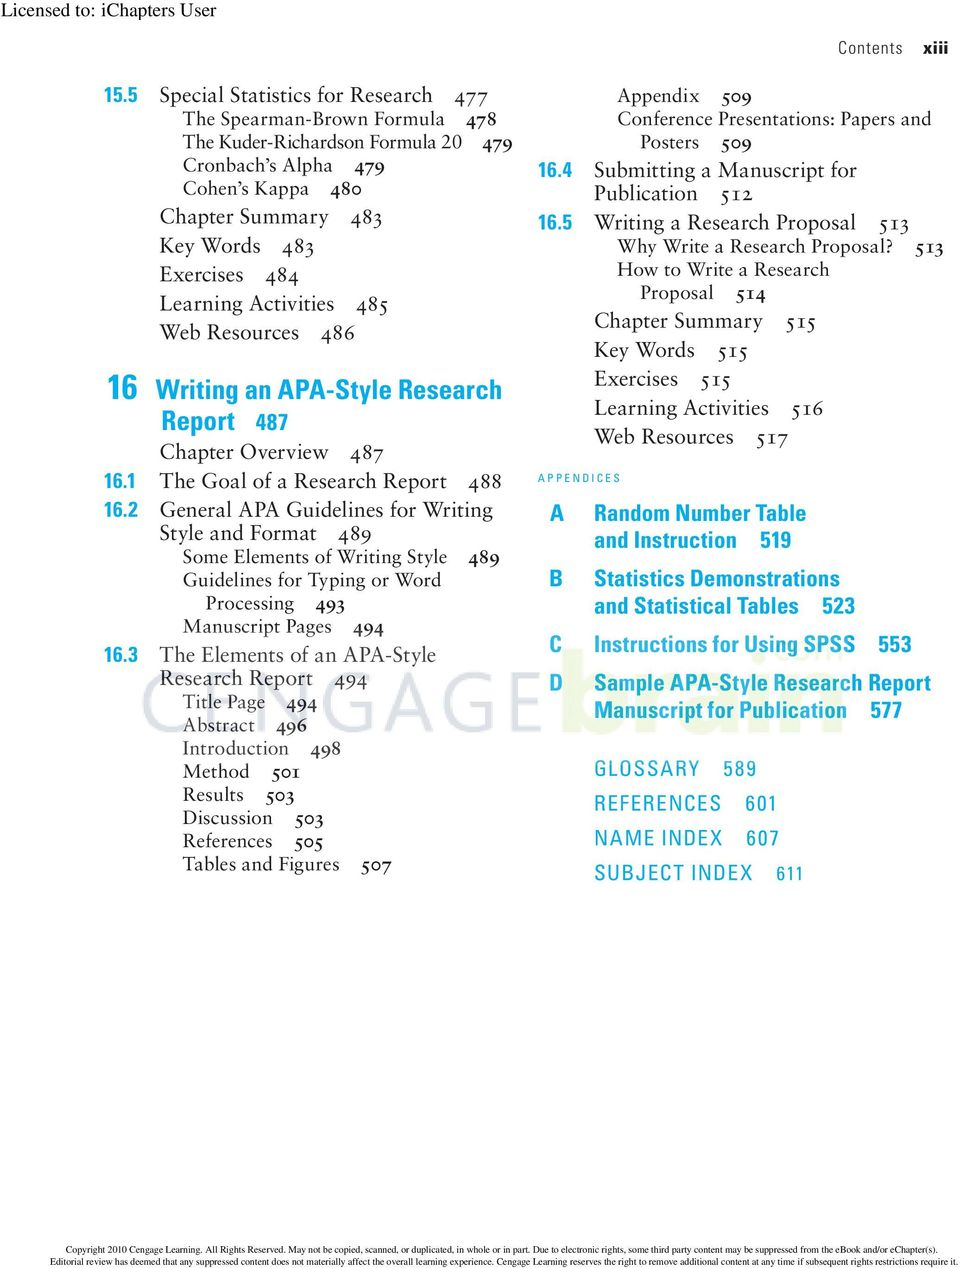 Frederick j gravetter pdf learning activities 485 web resources 486 16 writing an apa style research report 487 chapter fandeluxe Gallery